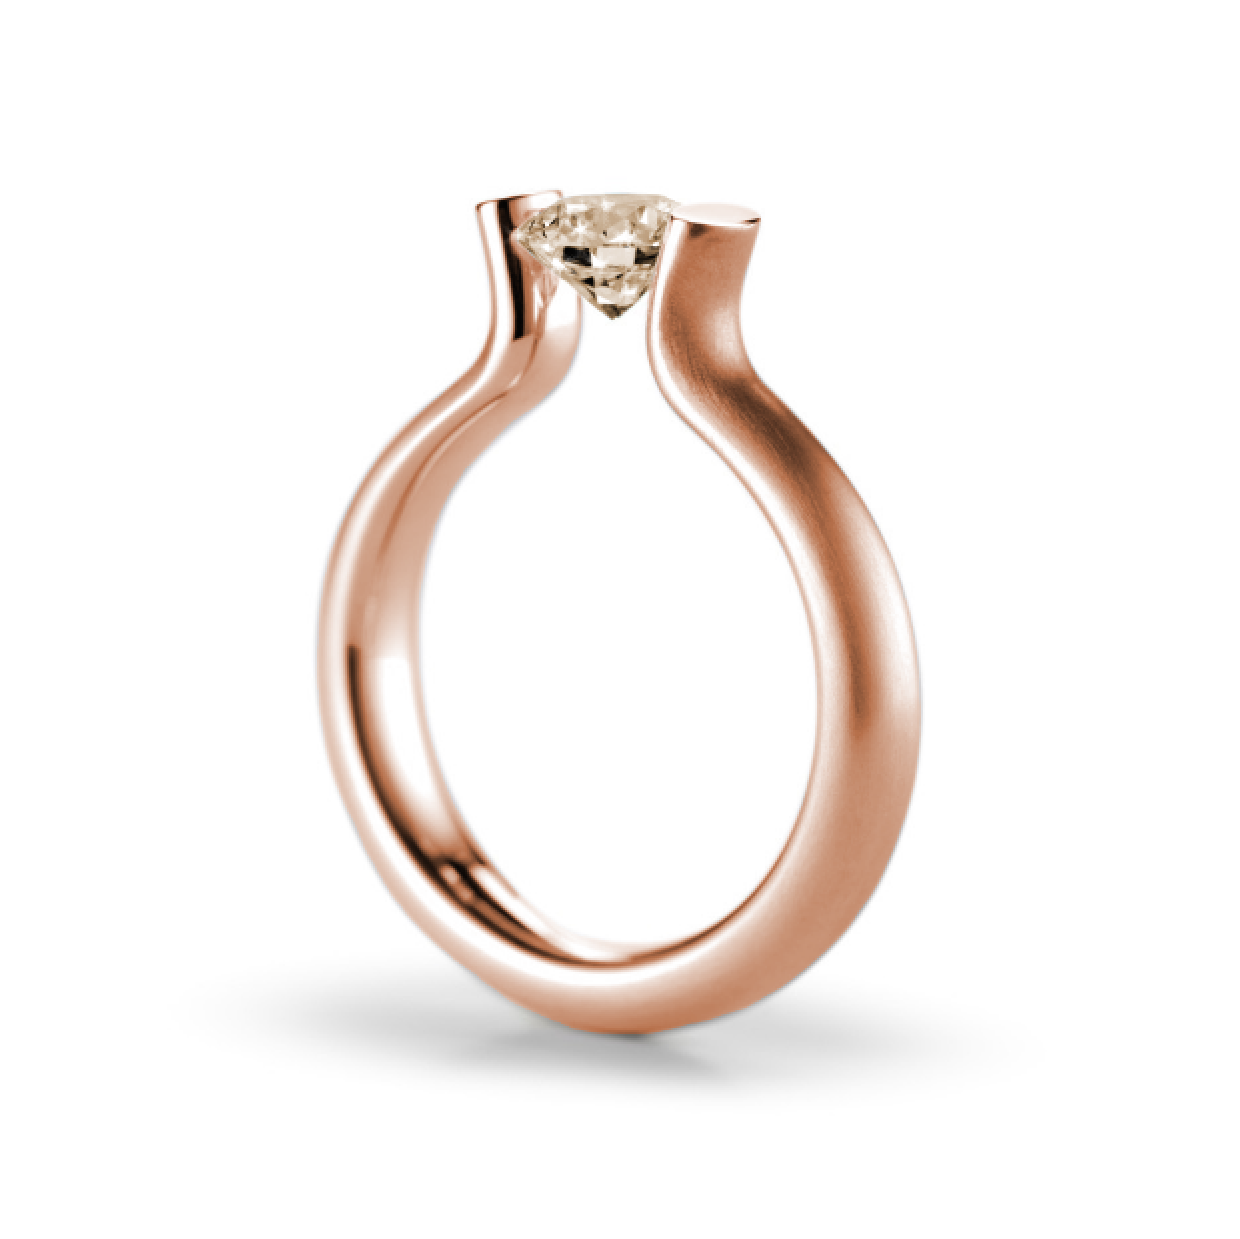 Niessing - Tension Ring - Rose Gold Heaven Engagement Ring - ORRO  Contemporary Jewellery Glasgow -